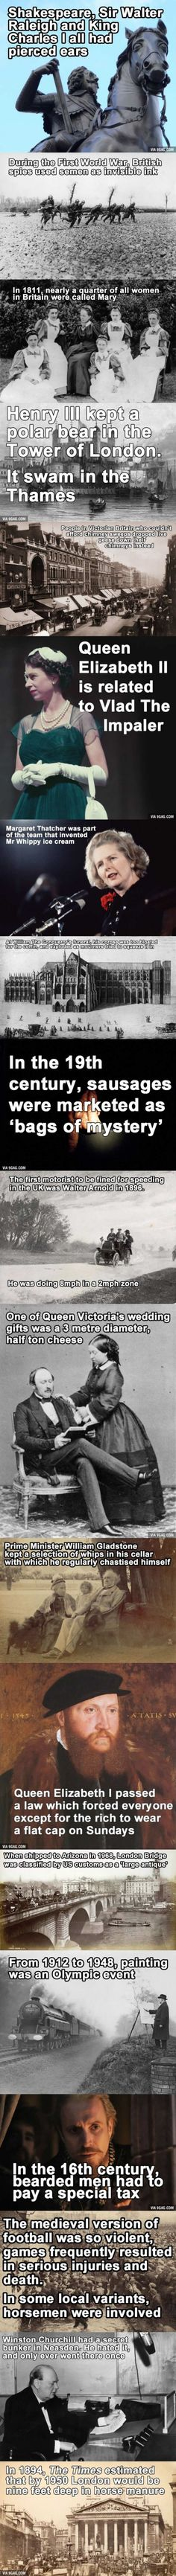 19 Facts of British History